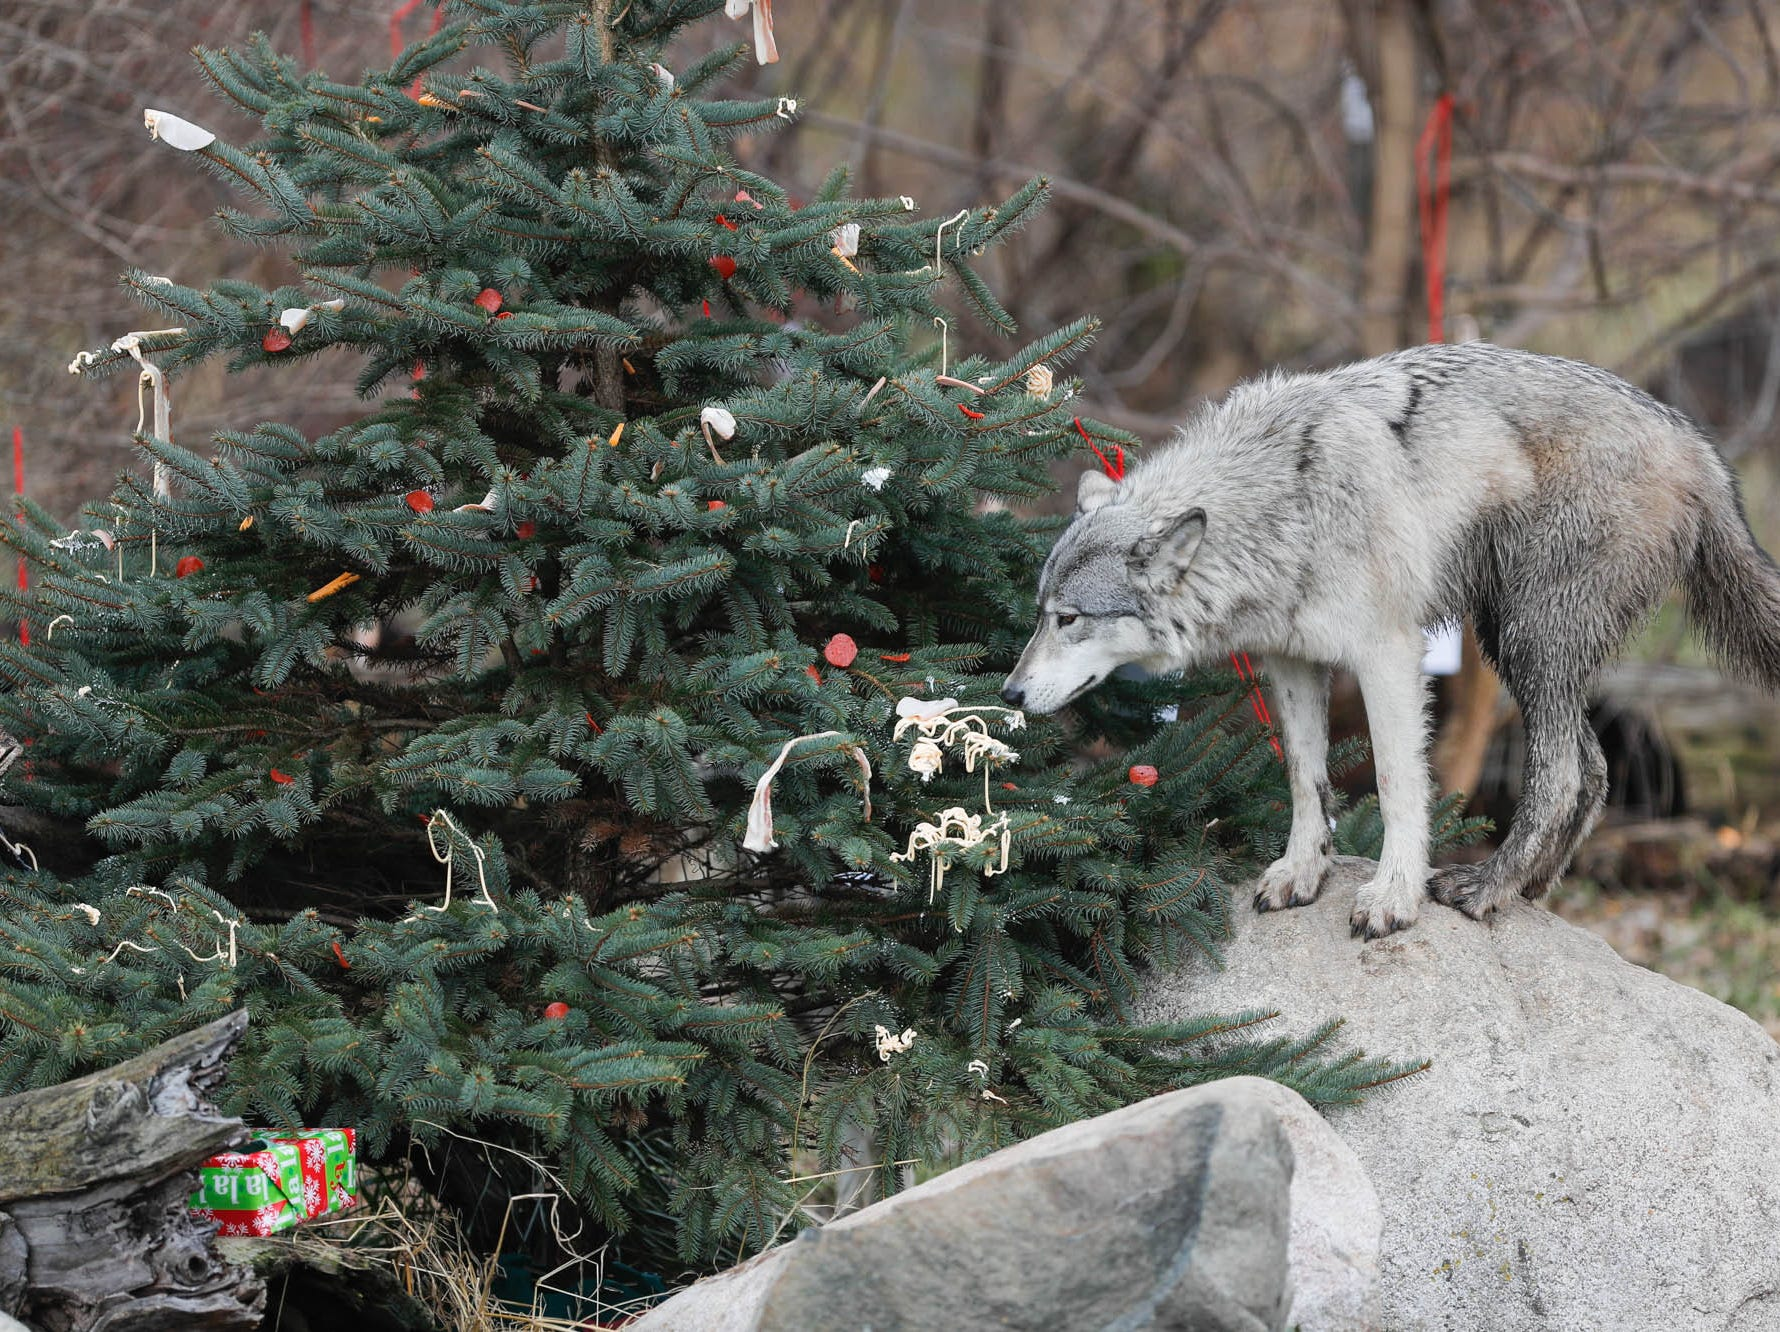 A wolf snacks on Easy Cheese used to decorate a Christmas tree during Santa's visit to Wolf Park in Battle Ground Indiana on Saturday, Dec. 15, 2018. Guest's were invited to enter the wolf enclosure before the wolves were released to leave delicious gifts filled with treats and decorate a Christmas tree with snacks.